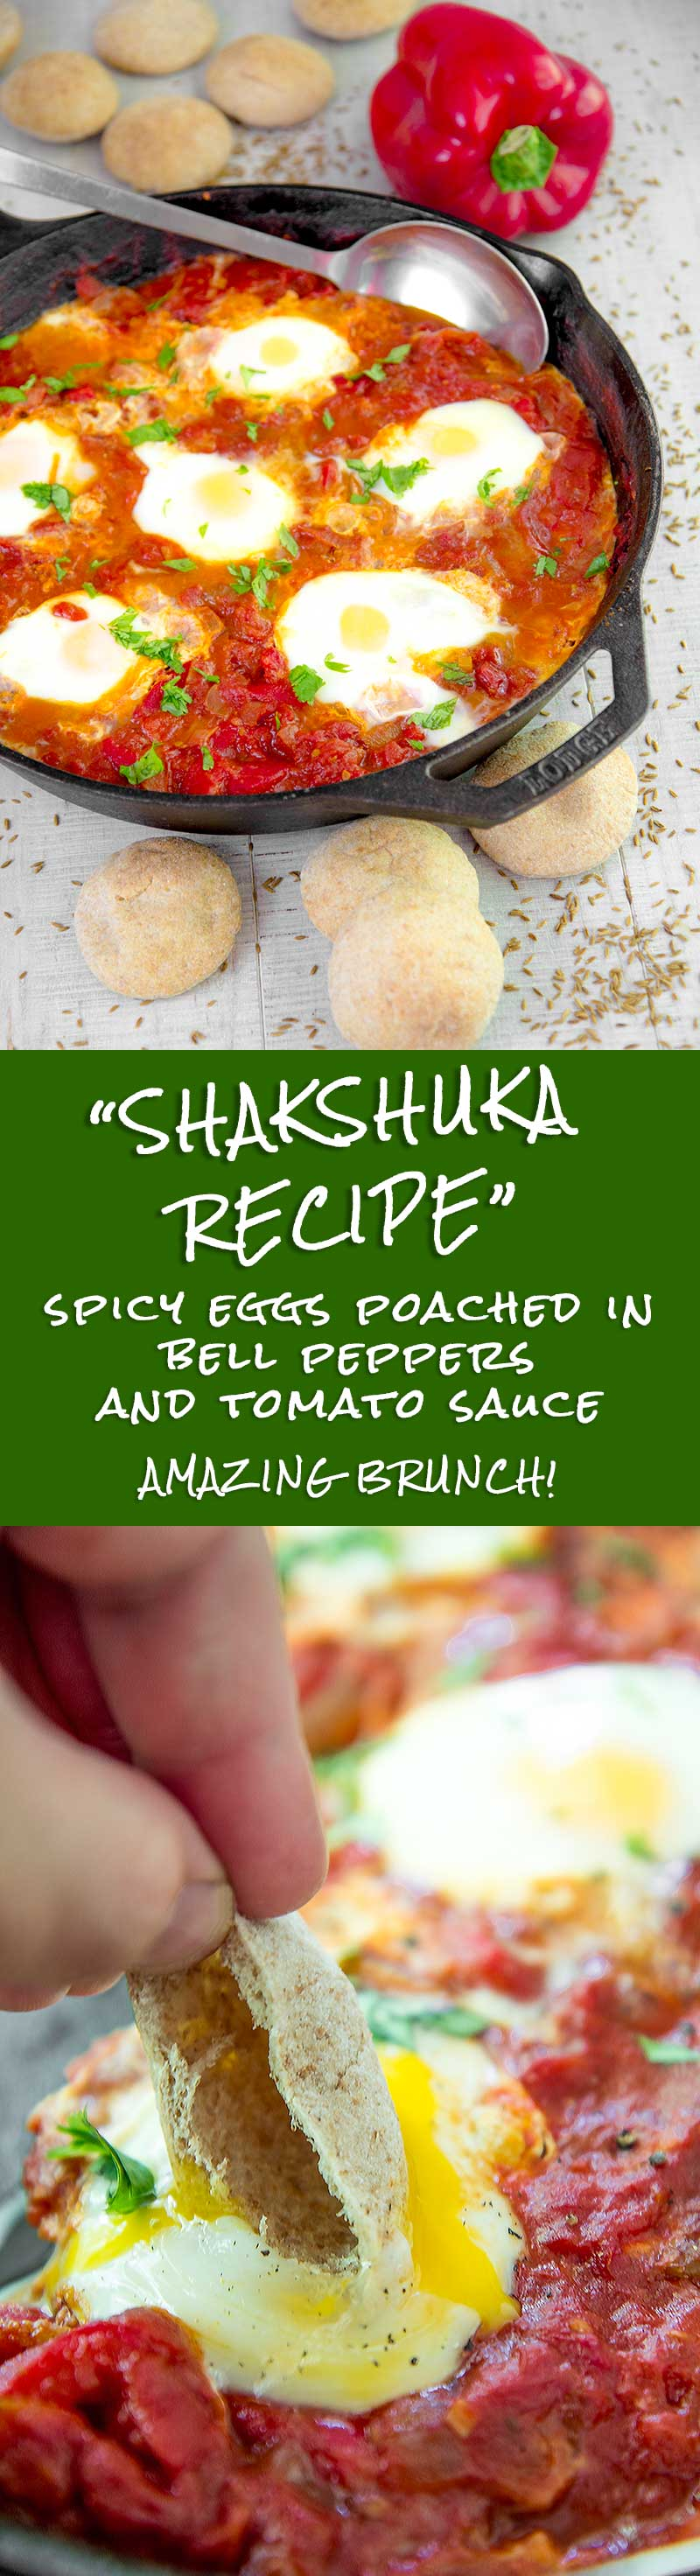 SHAKSHUKA RECIPE - spicy eggs poached in bell pepper and tomato sauce